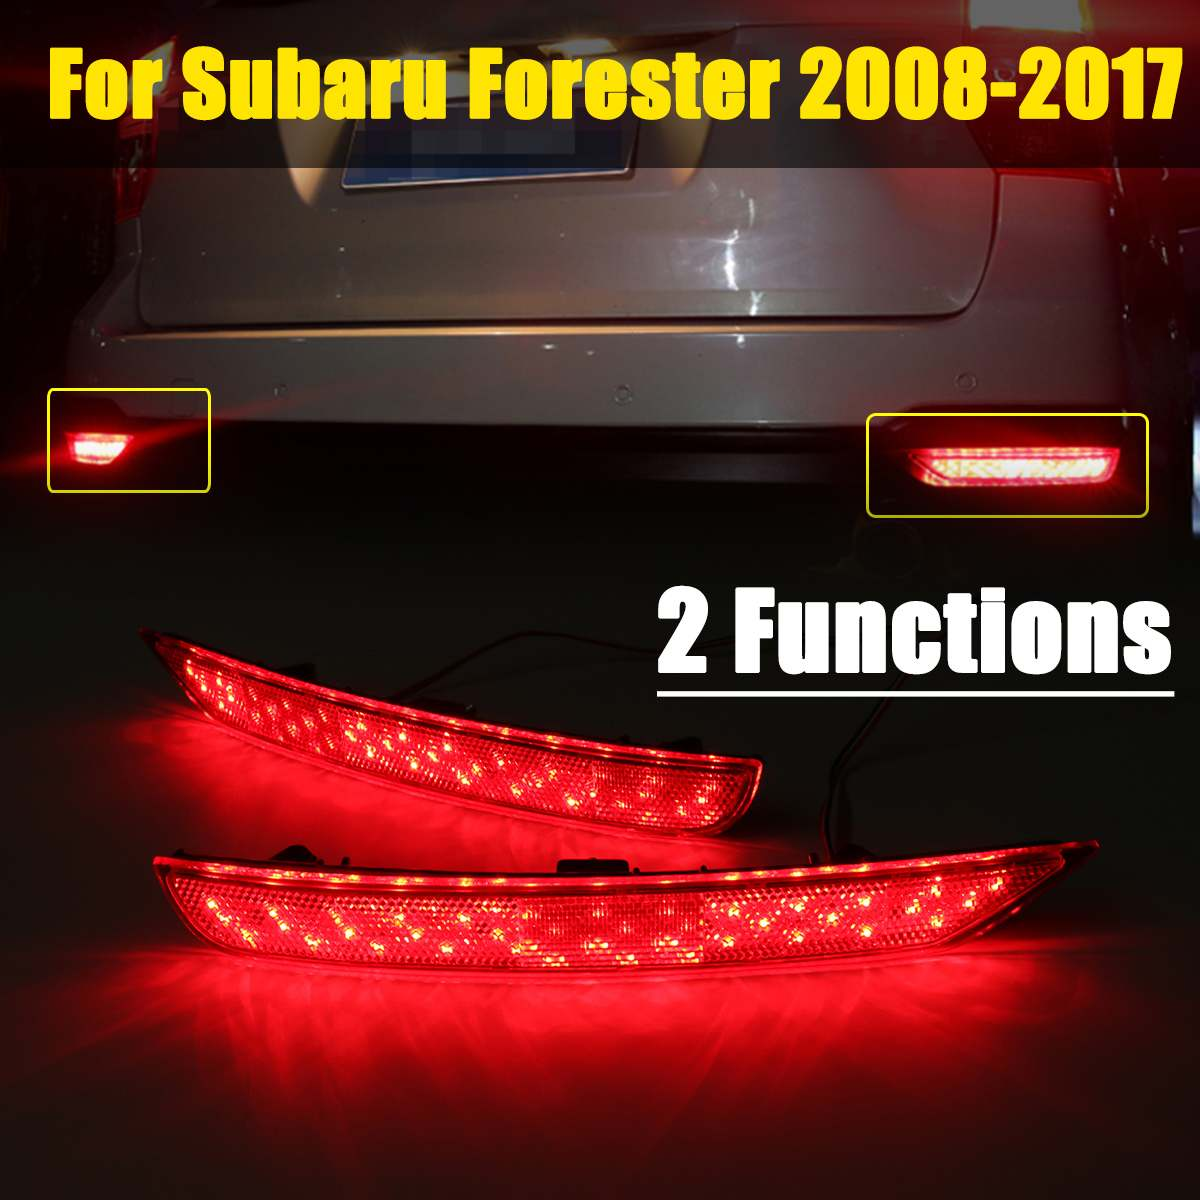 2 Functions 2PCS For Subaru Forester 2008-2017 LED Rear Bumper Reflector Light Red Car Driving Brake Fog Trim Molding Tail Lamp